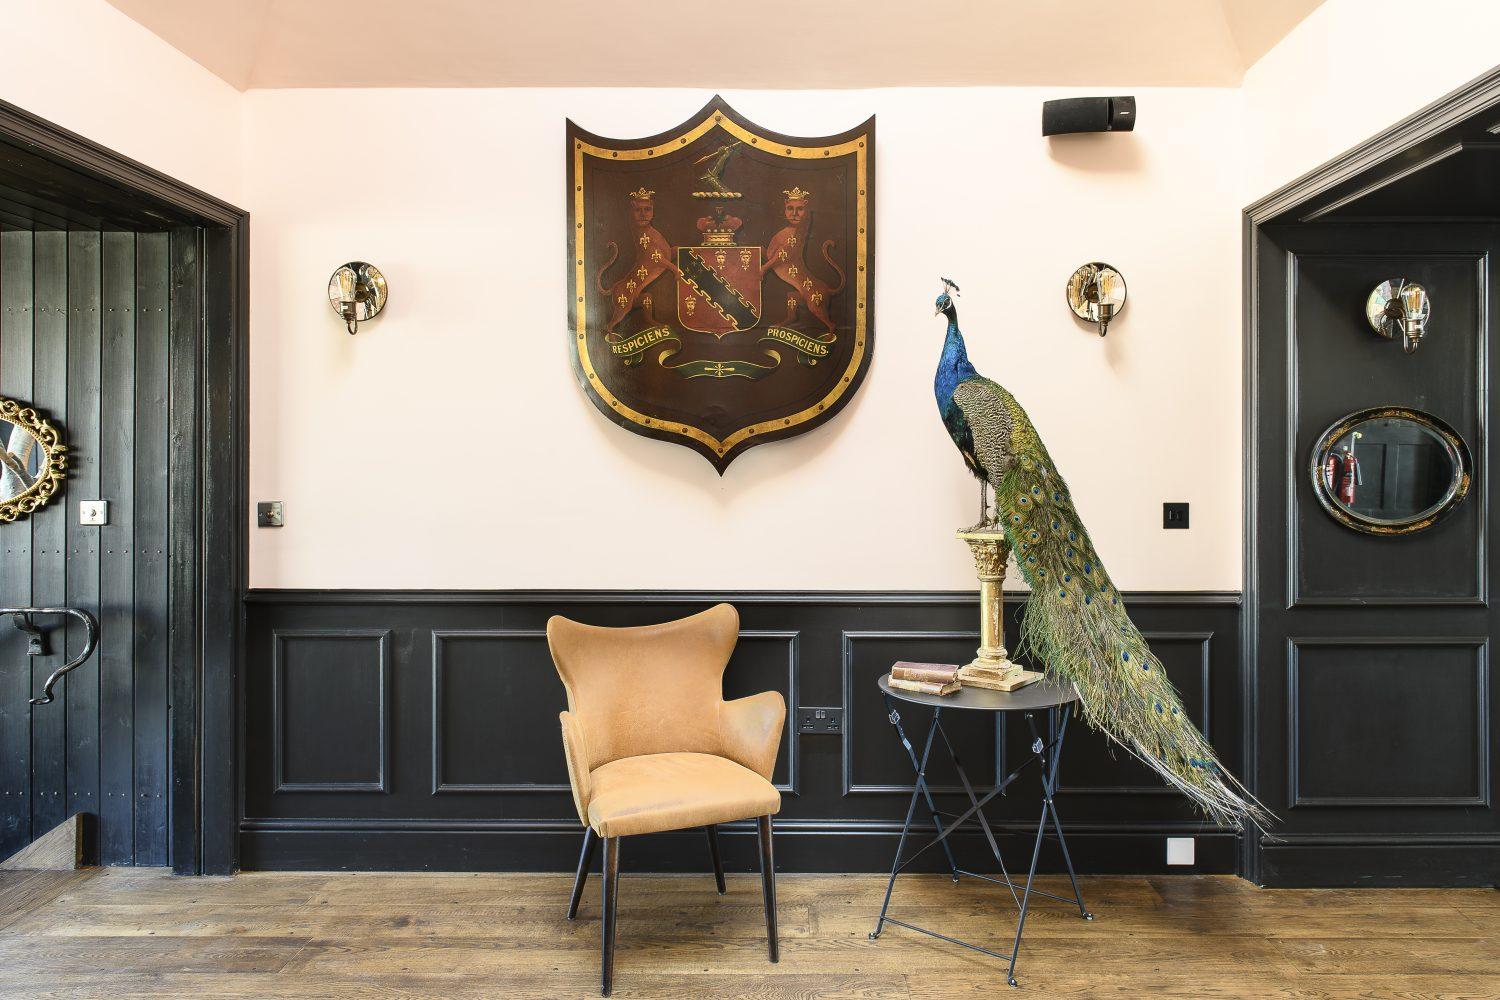 The venue's refurbished interior features a bespoke Melissa White wallpaper and multiple chandeliers alongside a life-size peacock and full height tree